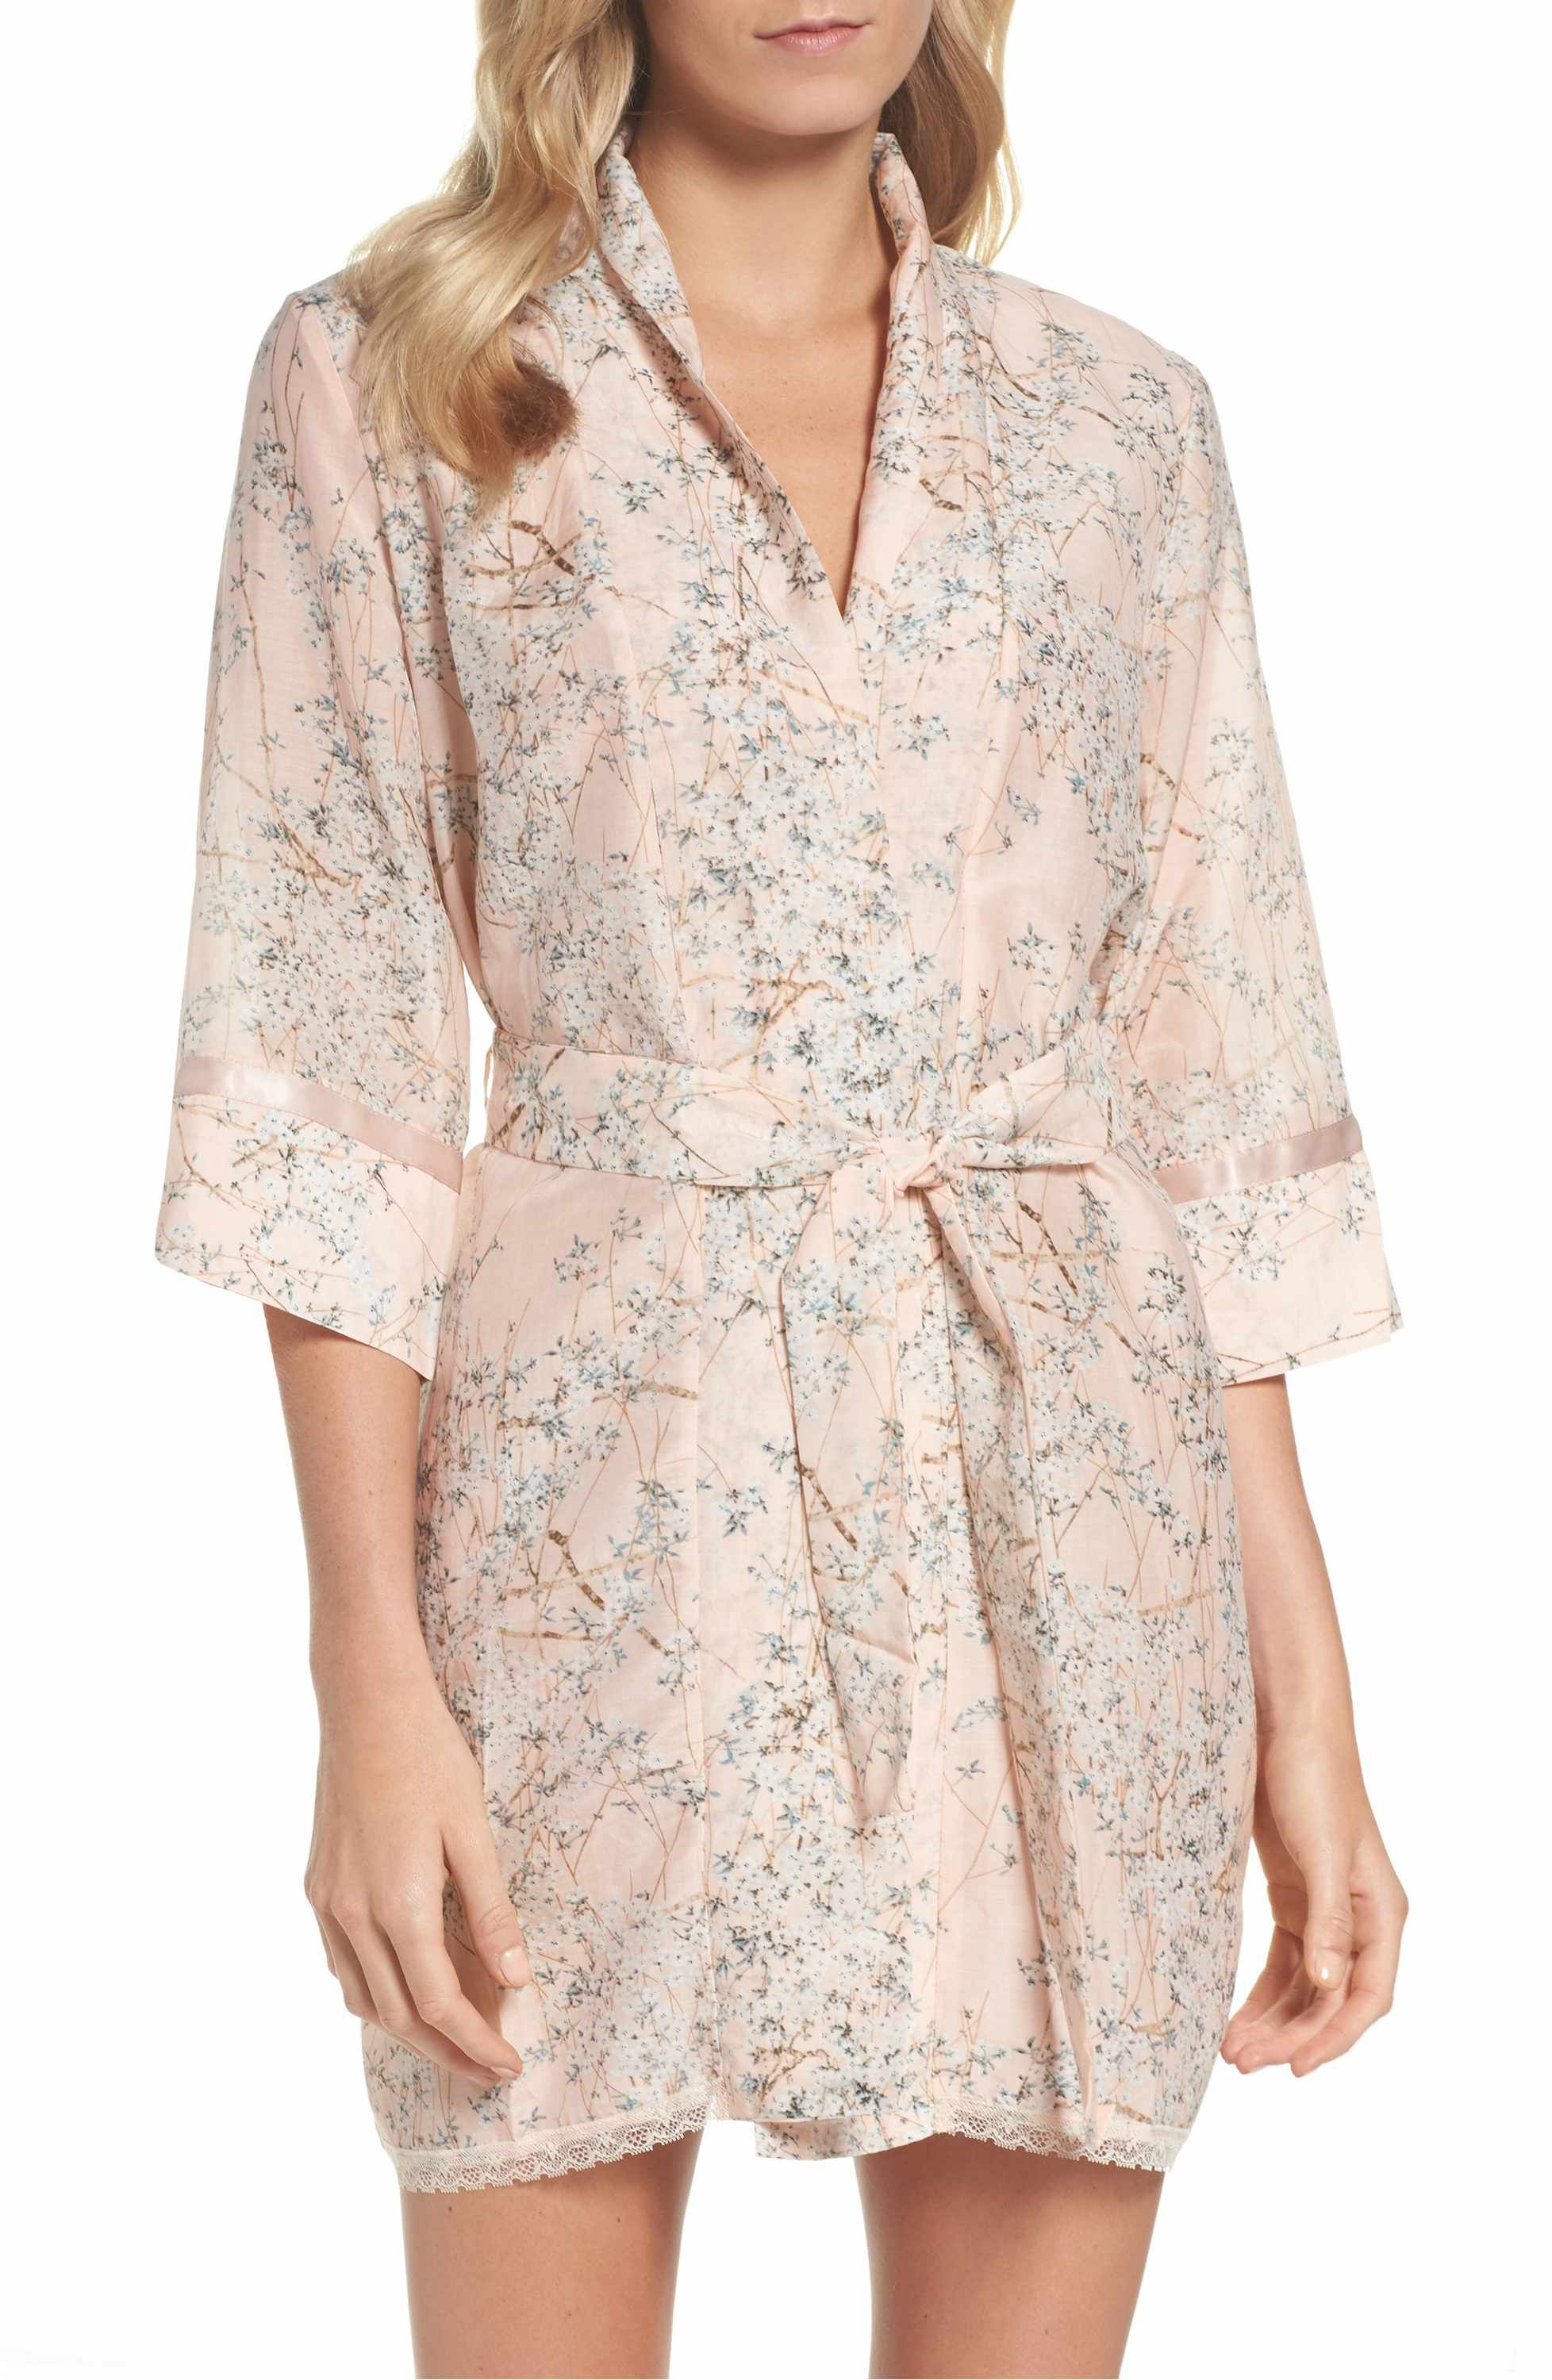 7a749c297 Main Image - Papinelle Cherry Blossom Cotton & Silk Short Robe Pink  Dressing Gown, Short